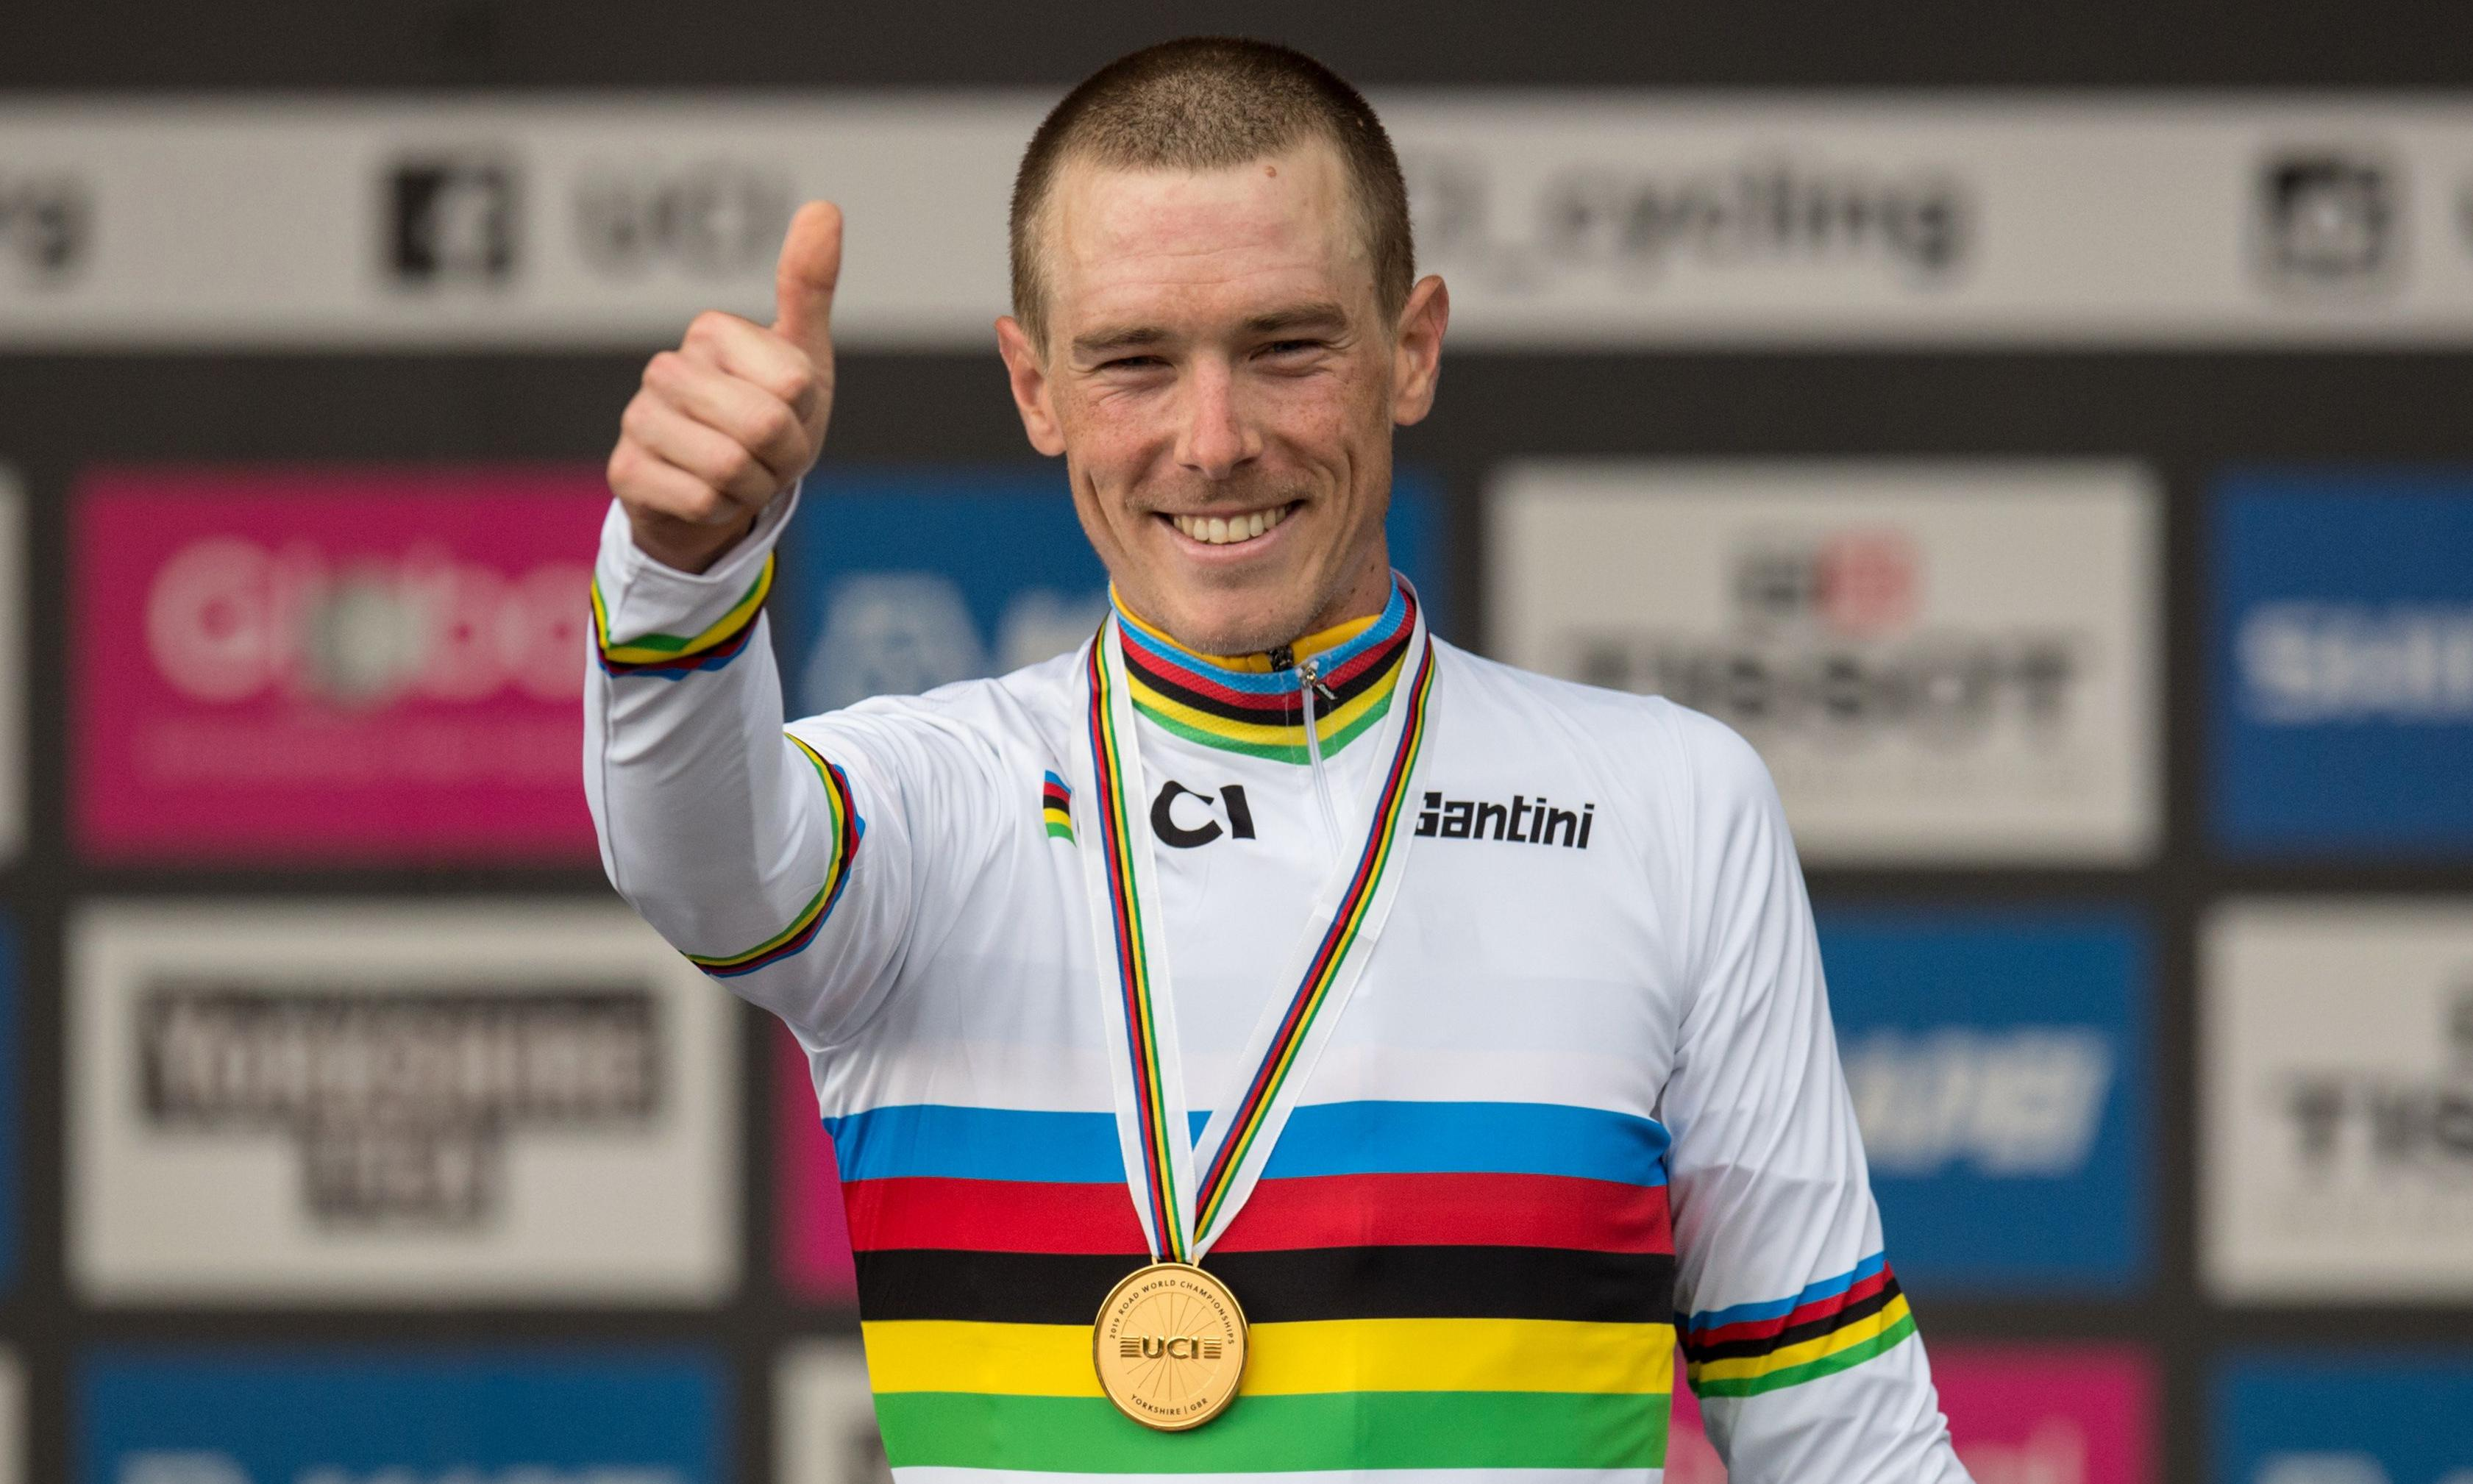 Rohan Dennis overcomes demons to defend rainbow stripes